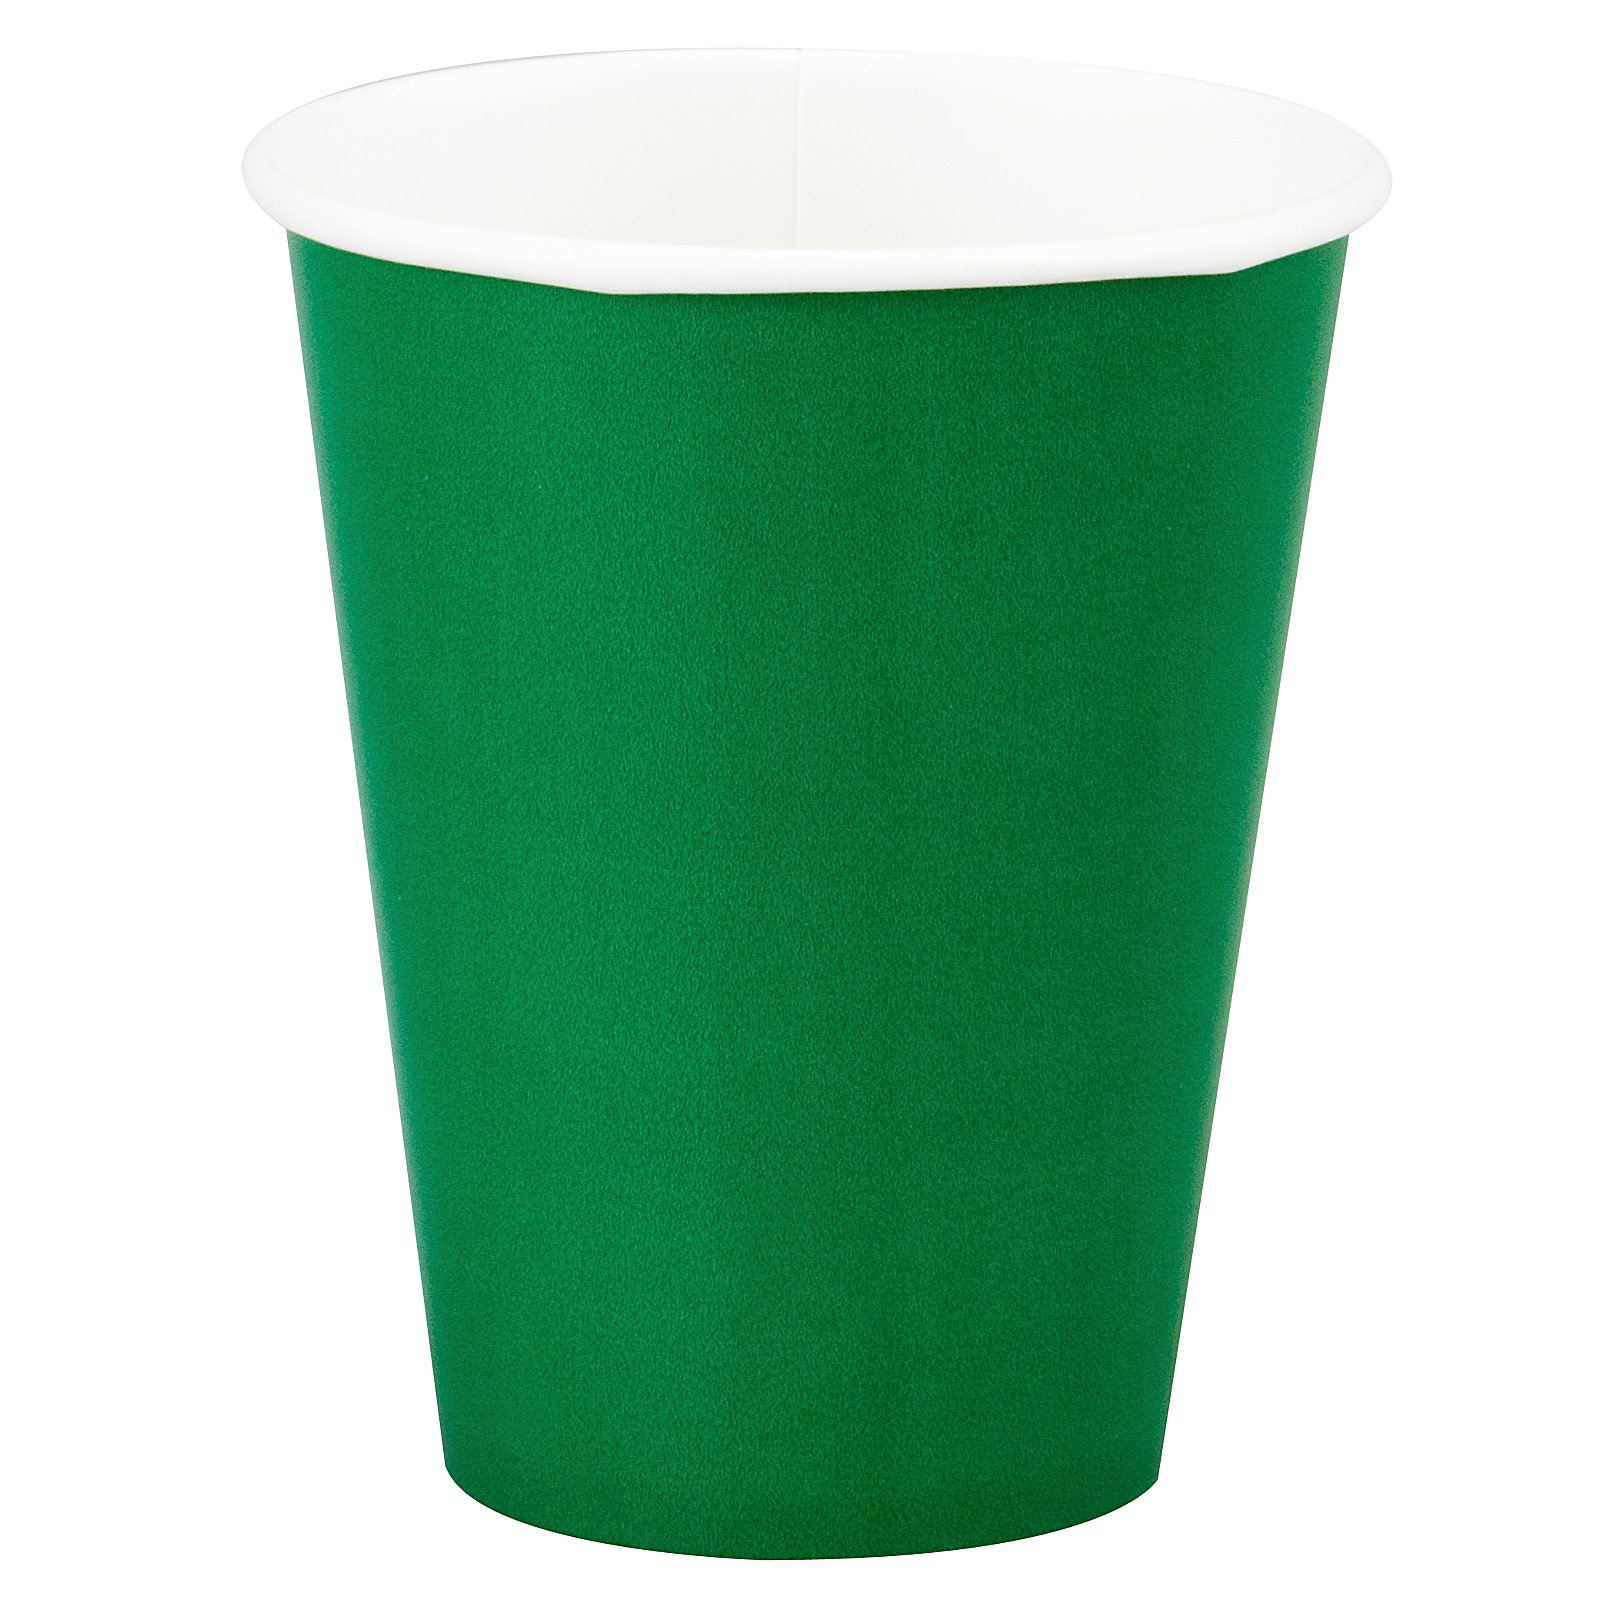 Emerald Green (Green) 9 oz. Cups (24 count)